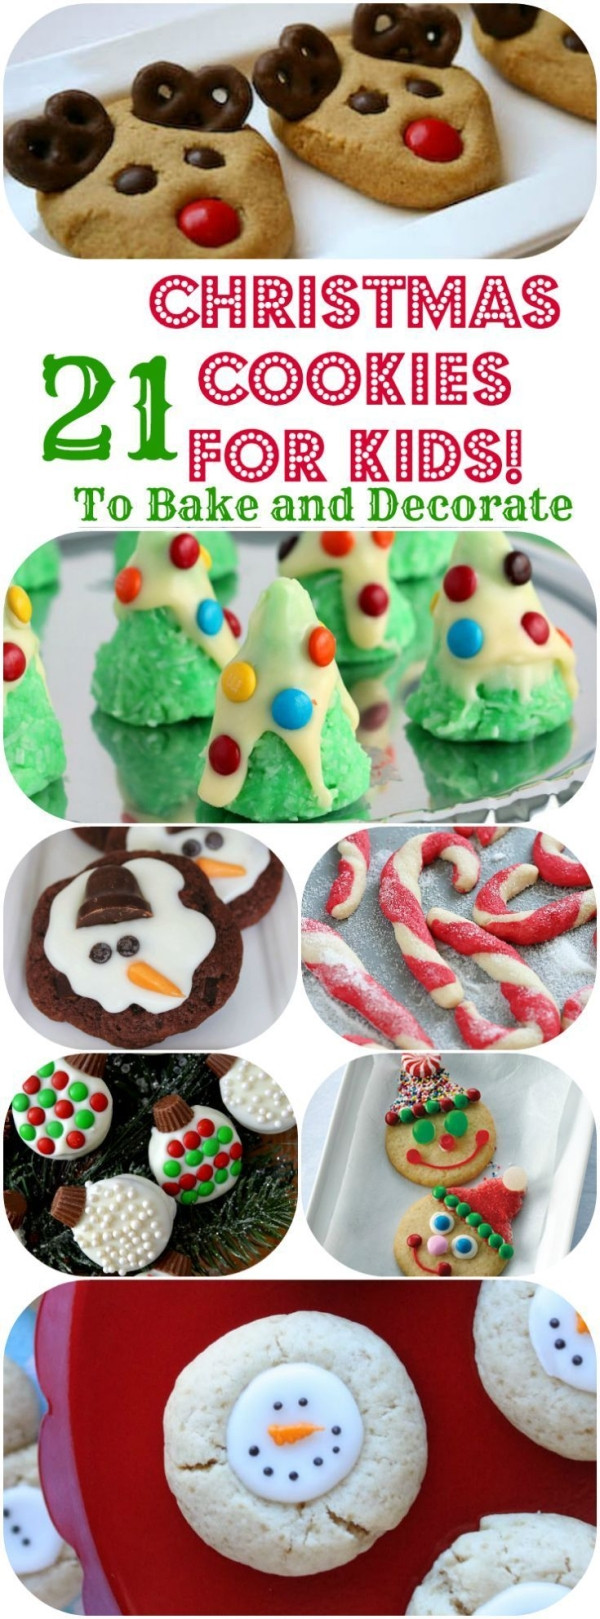 Easy Christmas Cookies For Kids  Easy Christmas Cookie recipes for Kids to Bake or Decorate